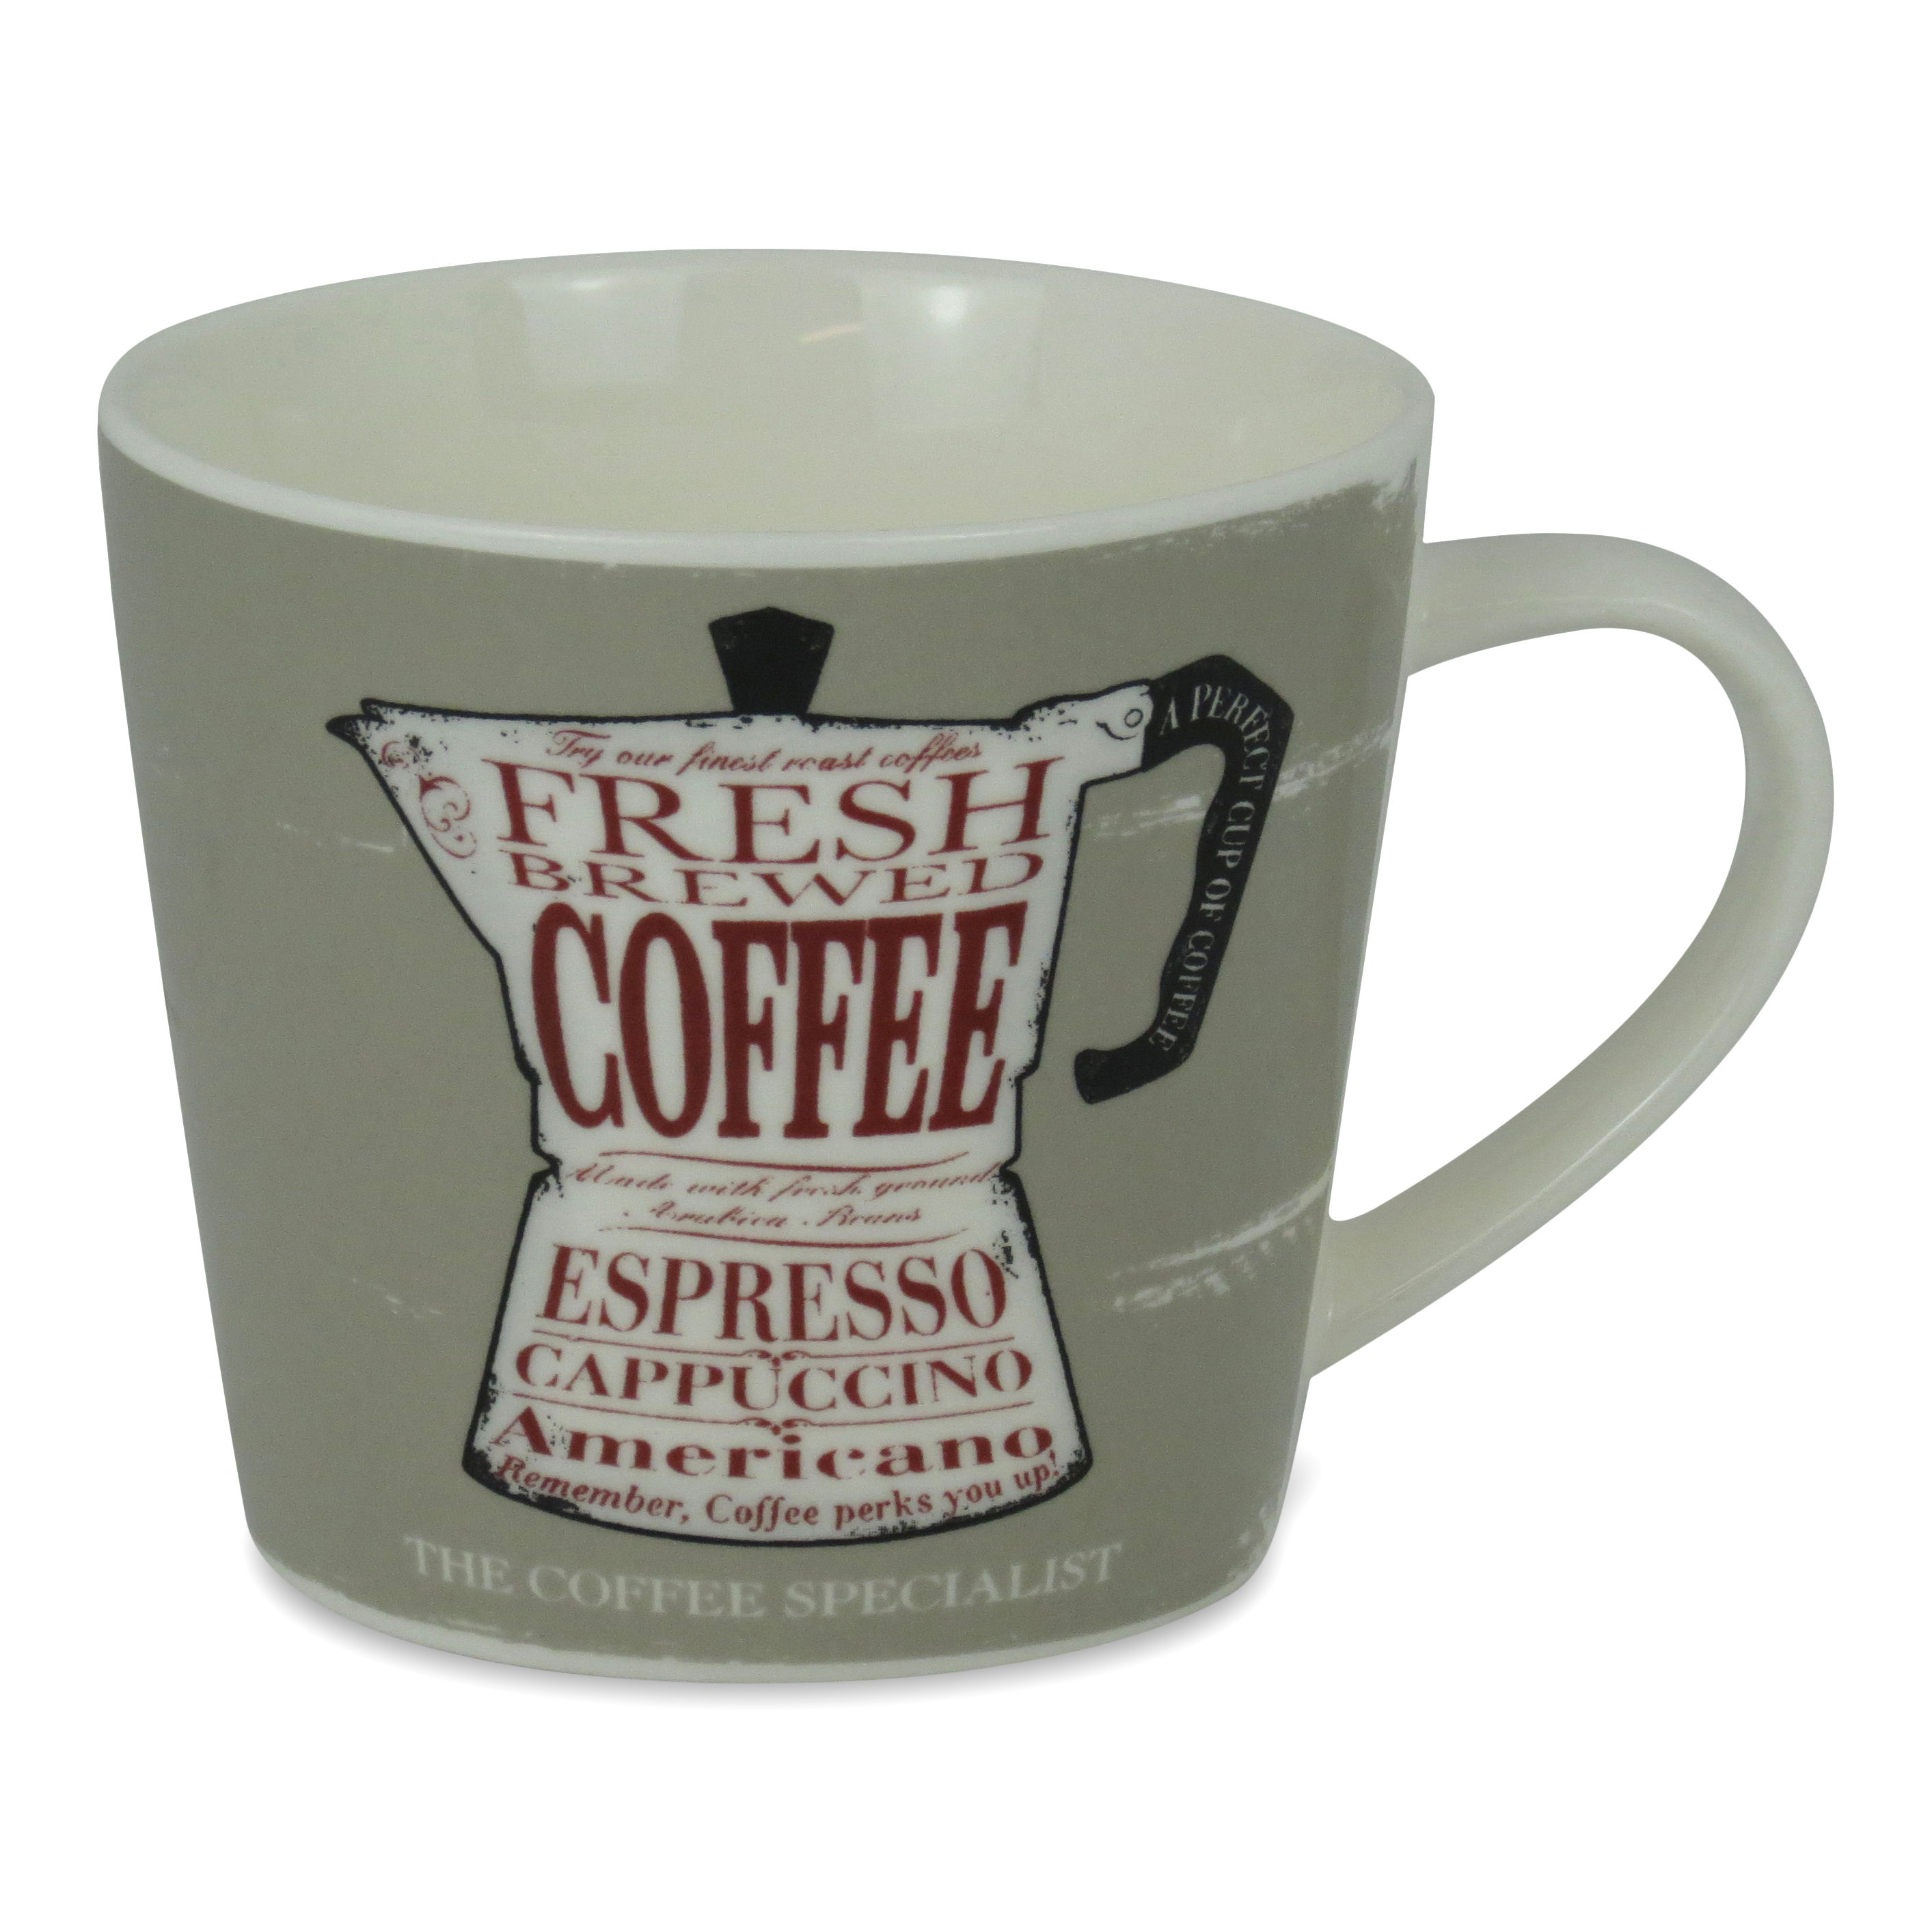 The Coffee Specialist Porcelain Mug